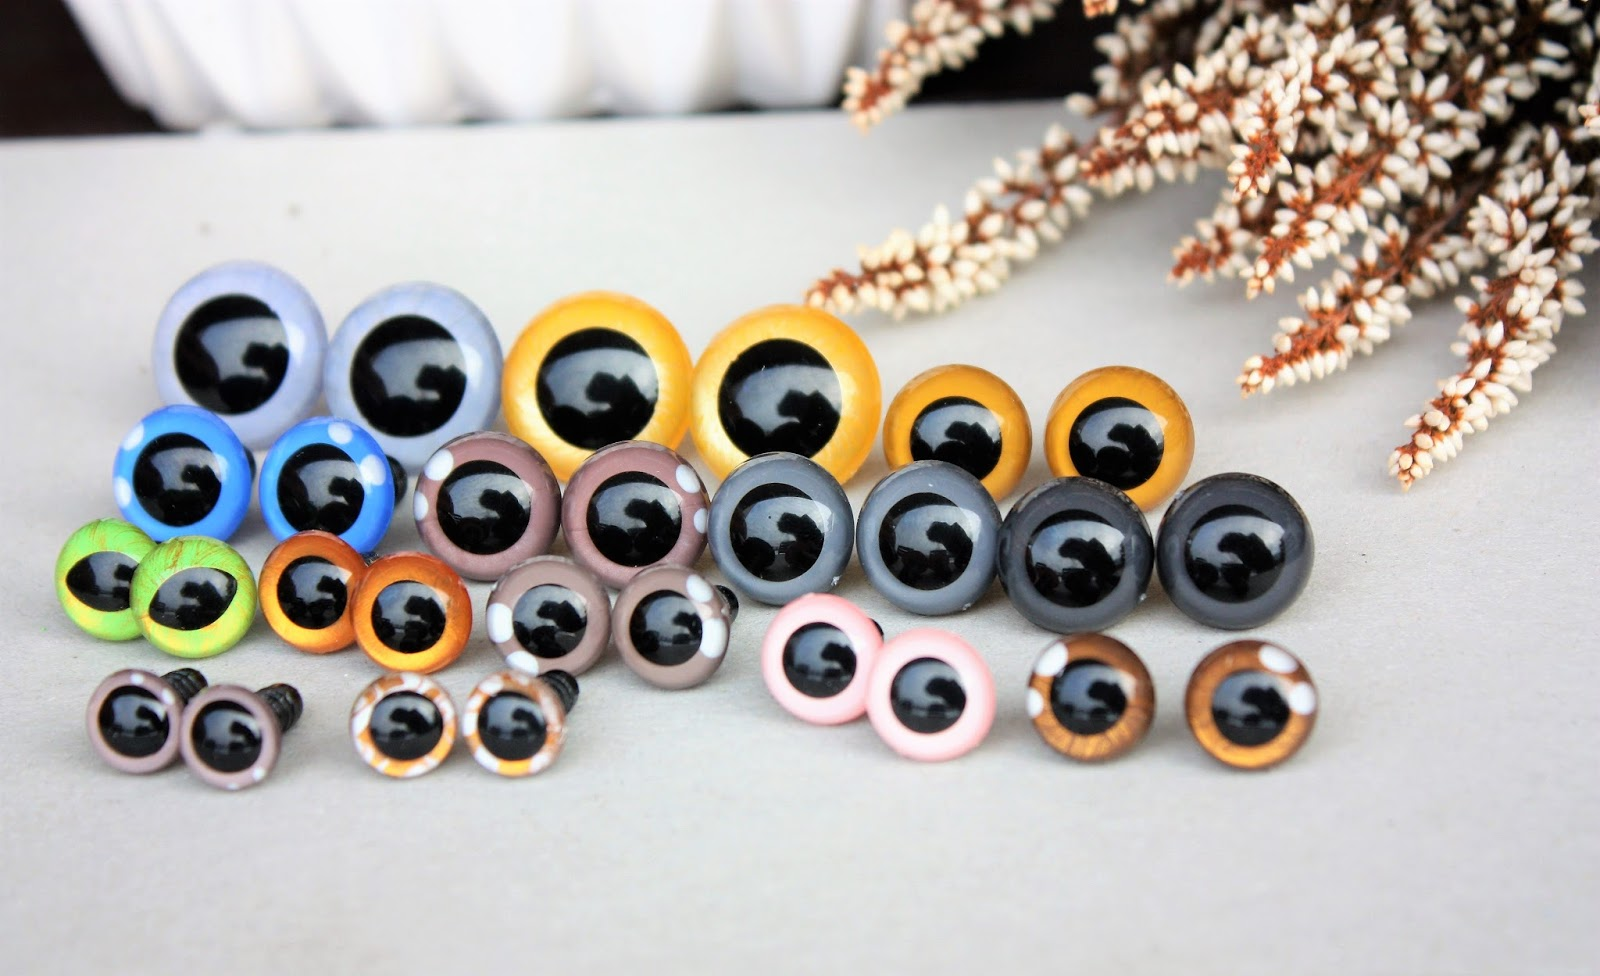 Eyes For Amigurumi : Happyamigurumi: hand painted safety eyes for amigurumi and handmade toys